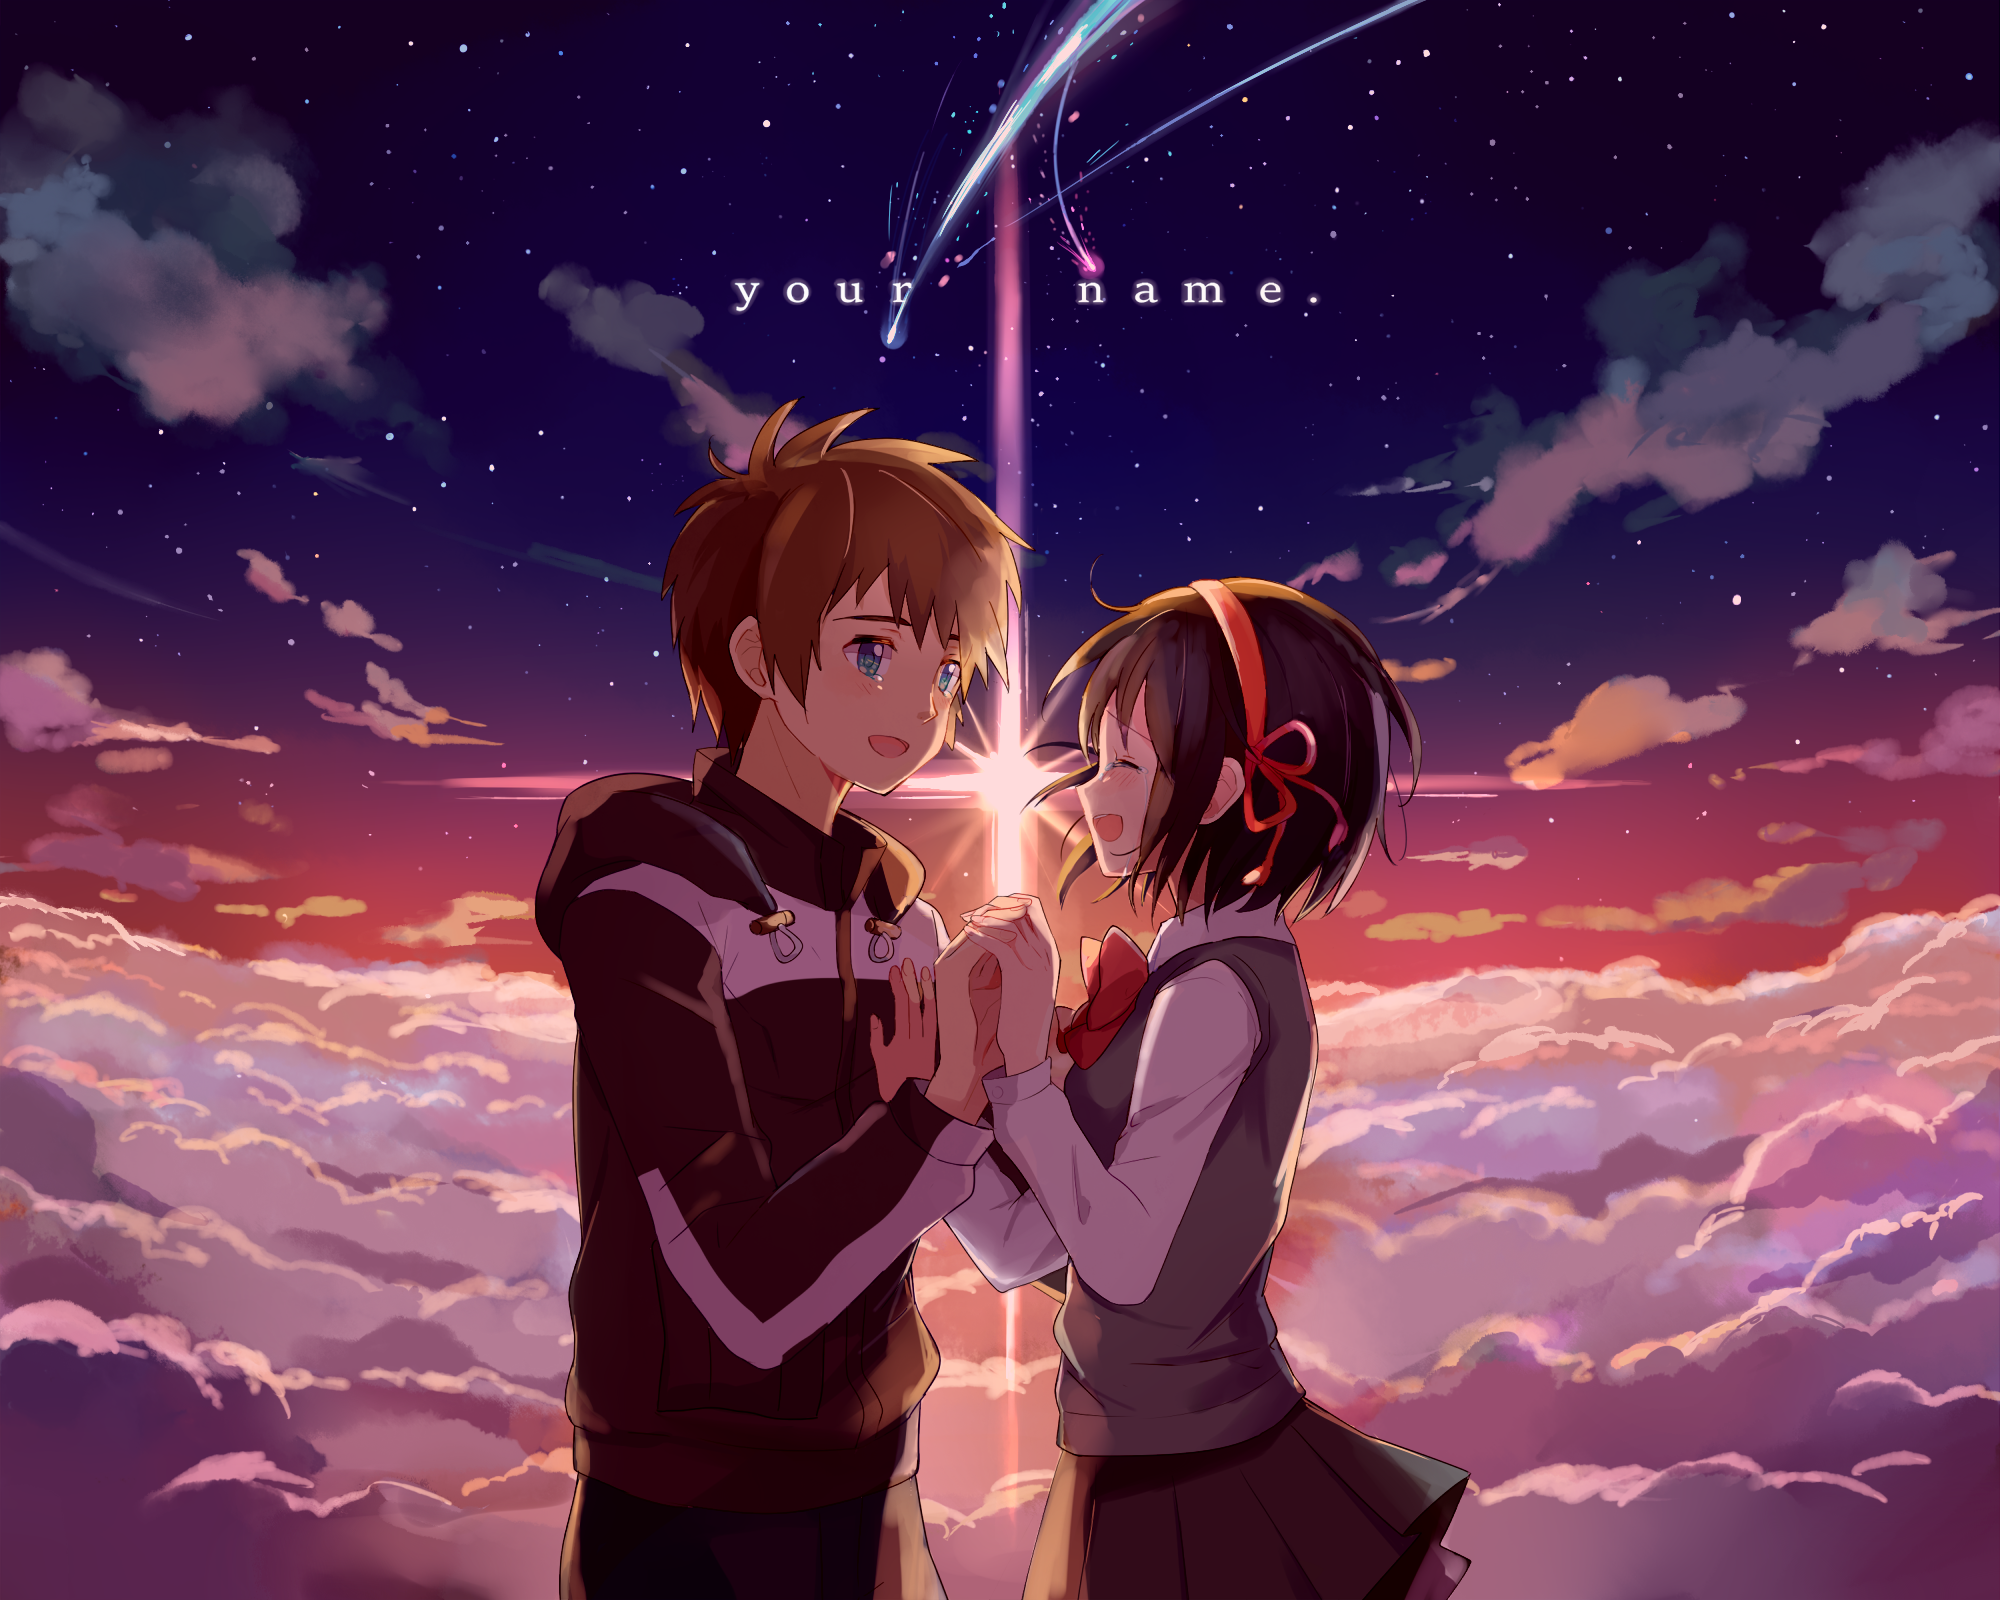 Your Name. Full HD Wallpaper And Background Image